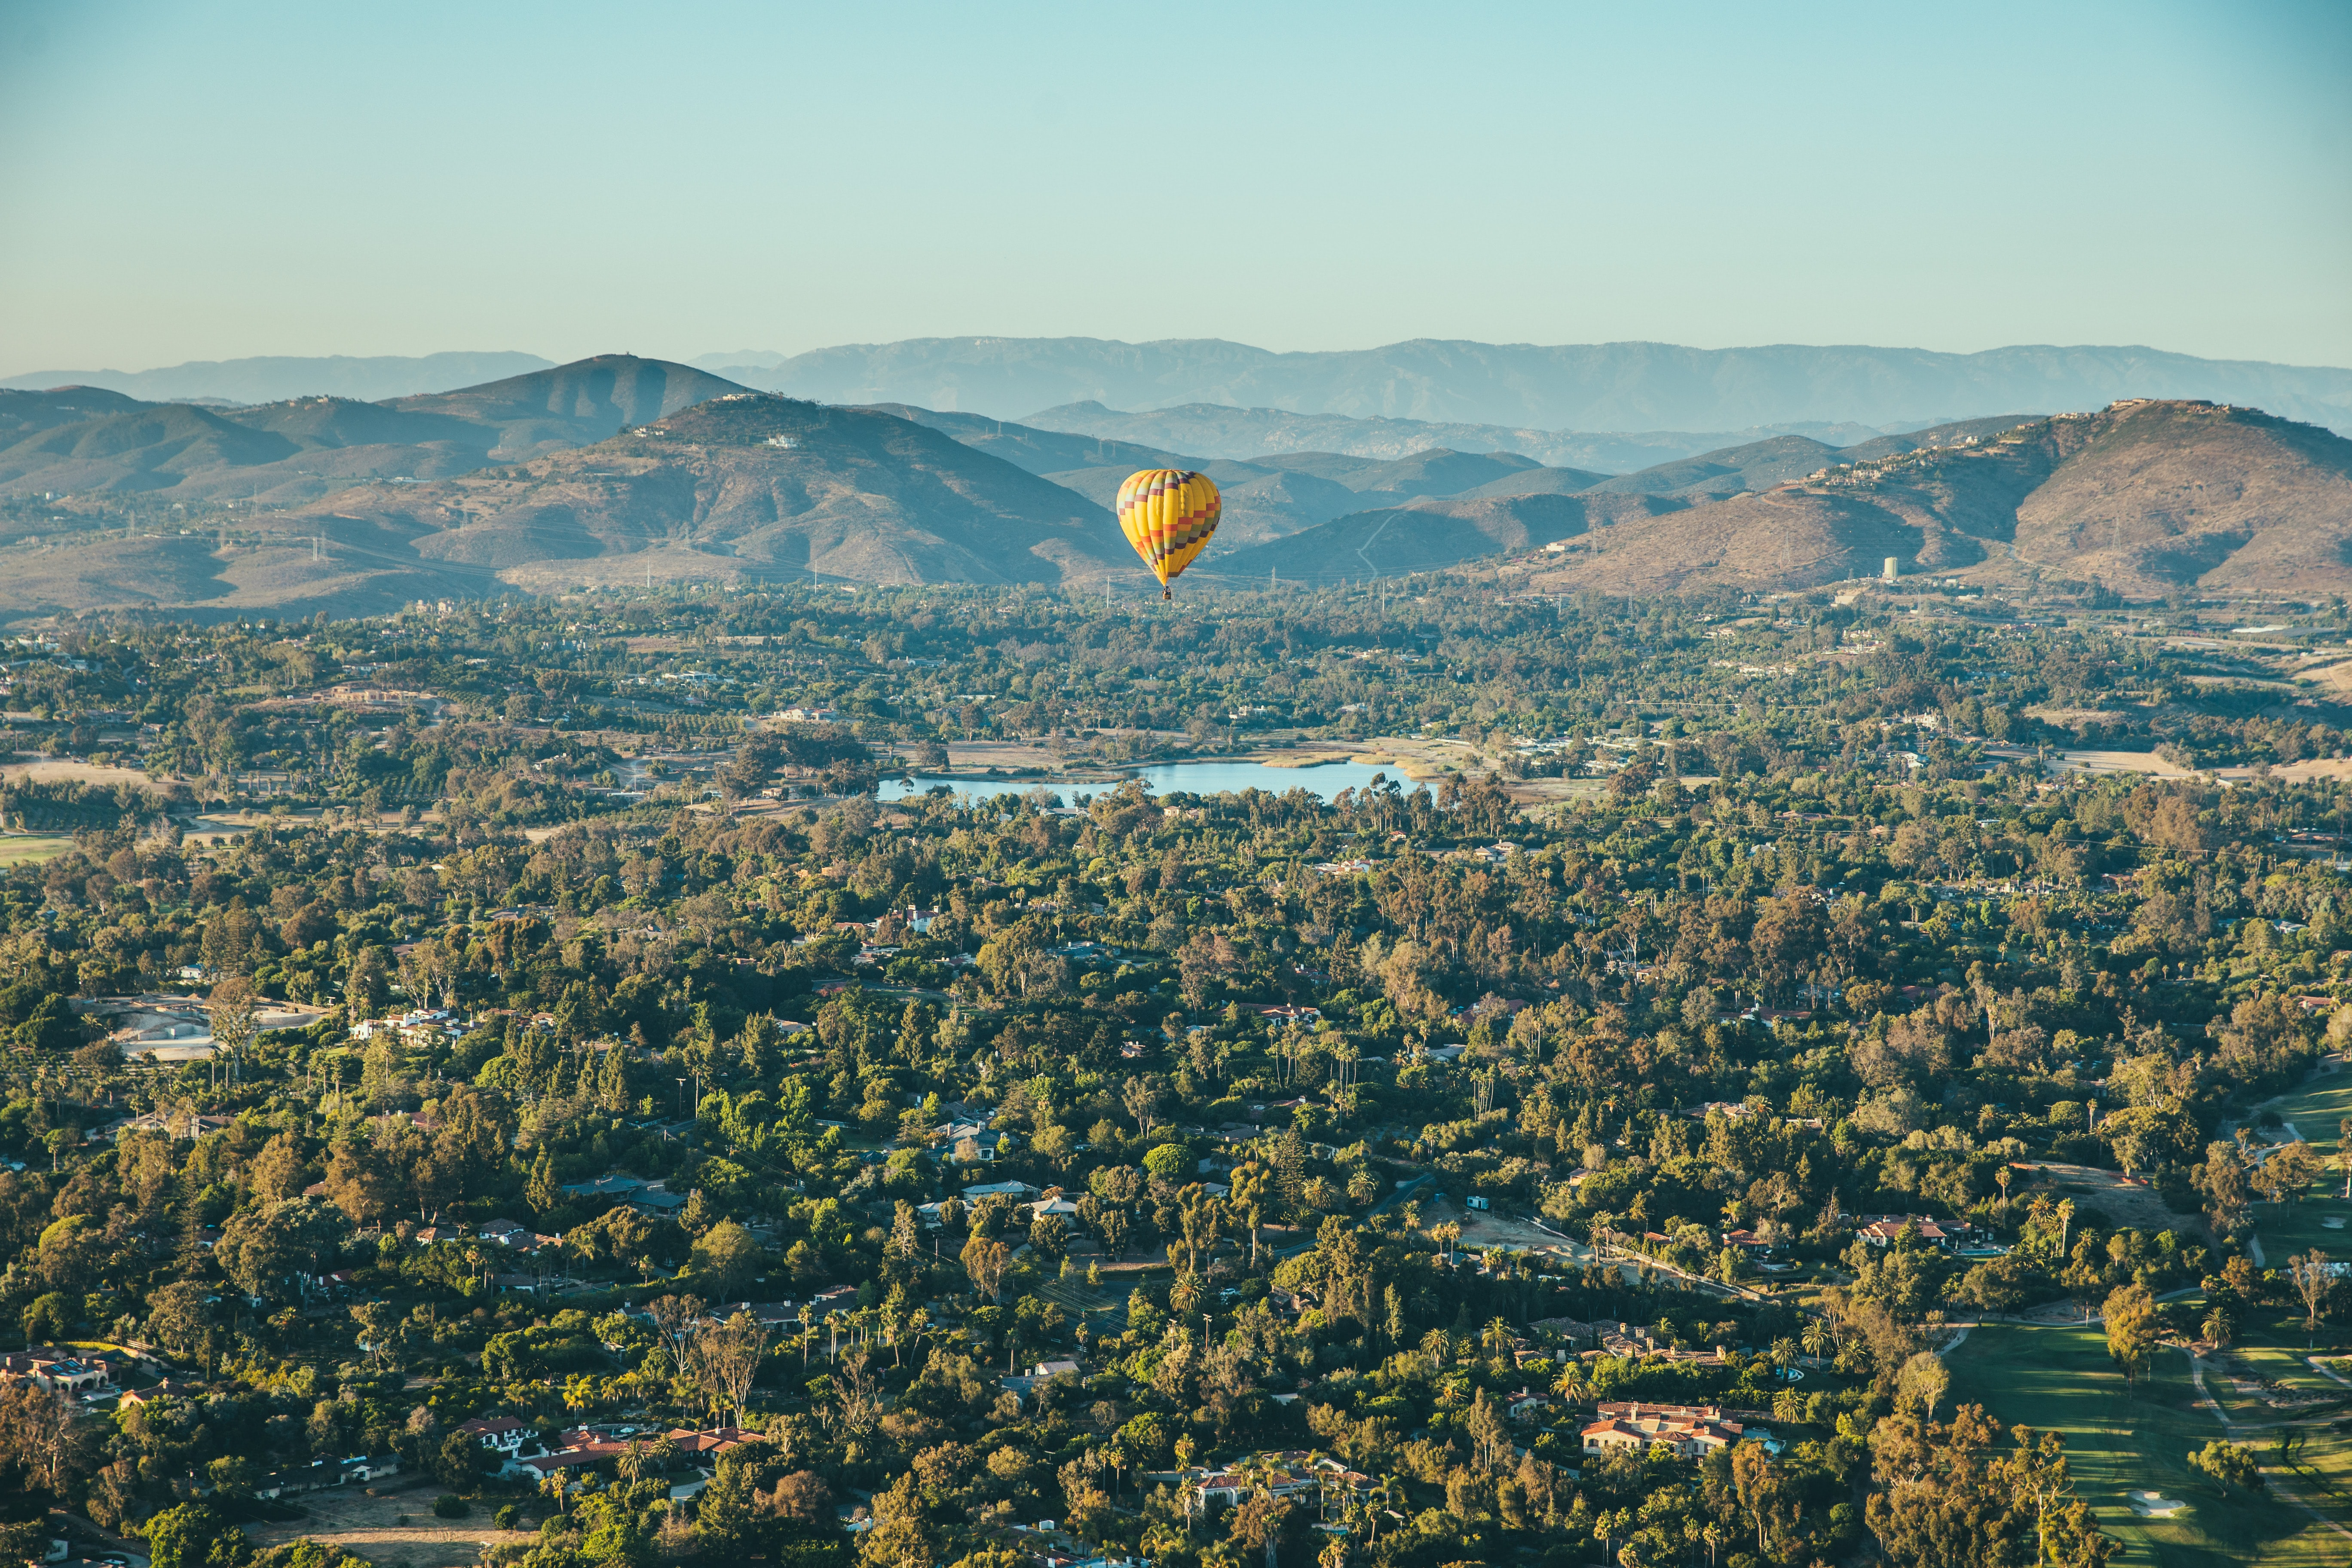 A yellow hot air balloon in the air above a small village among hills